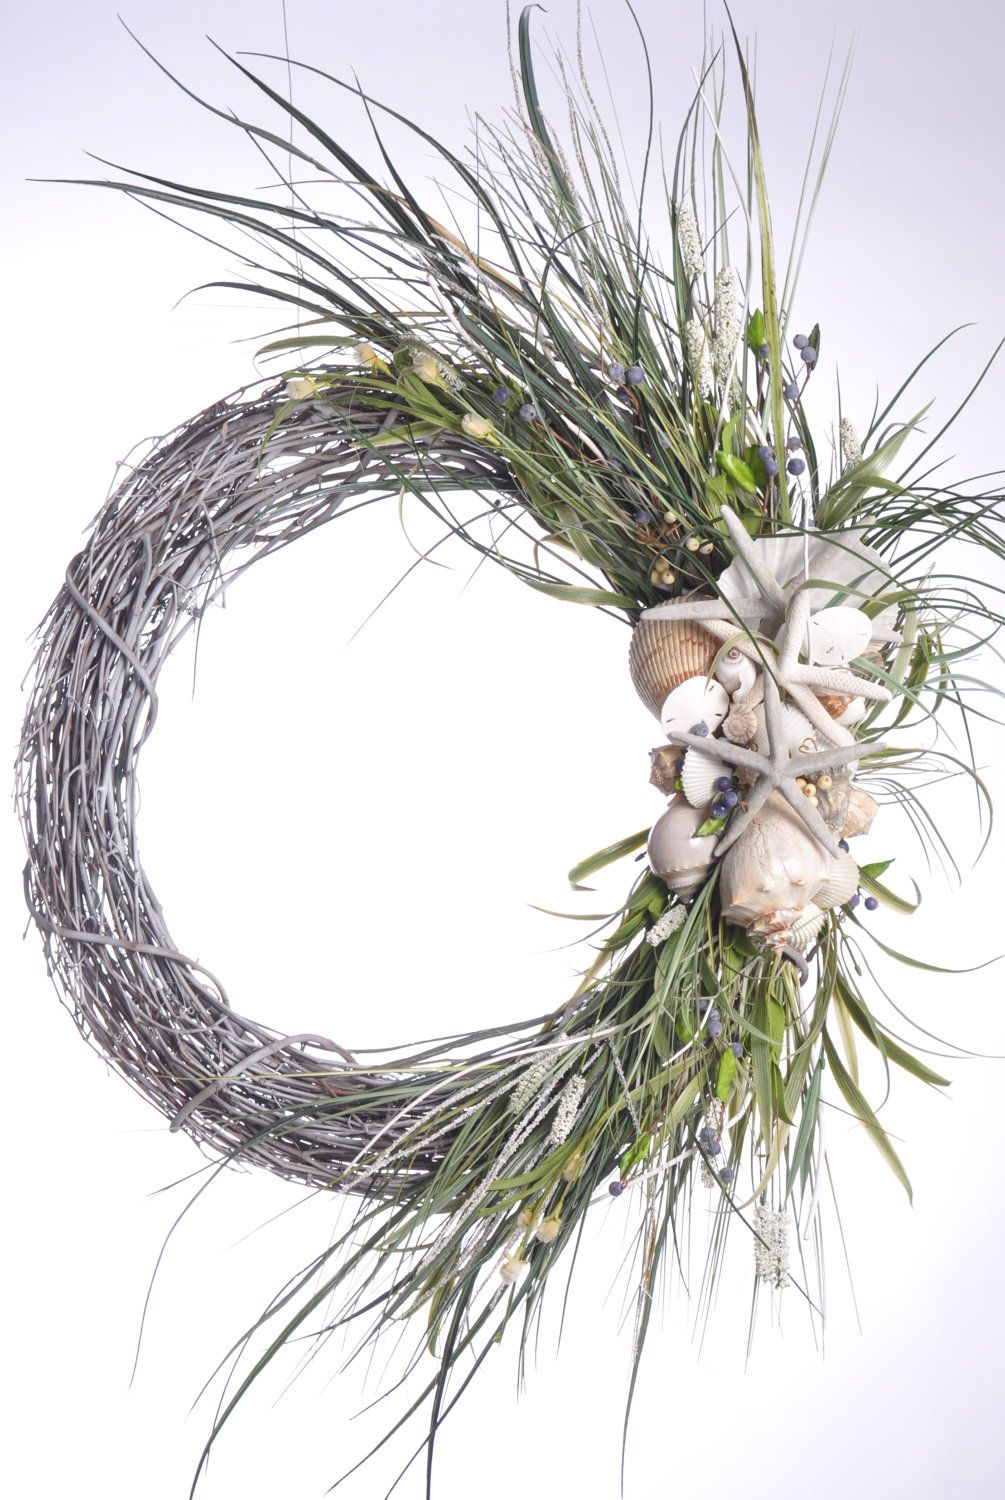 Oversize Beachy Wreath with Starfish and Shells | Wreaths ...